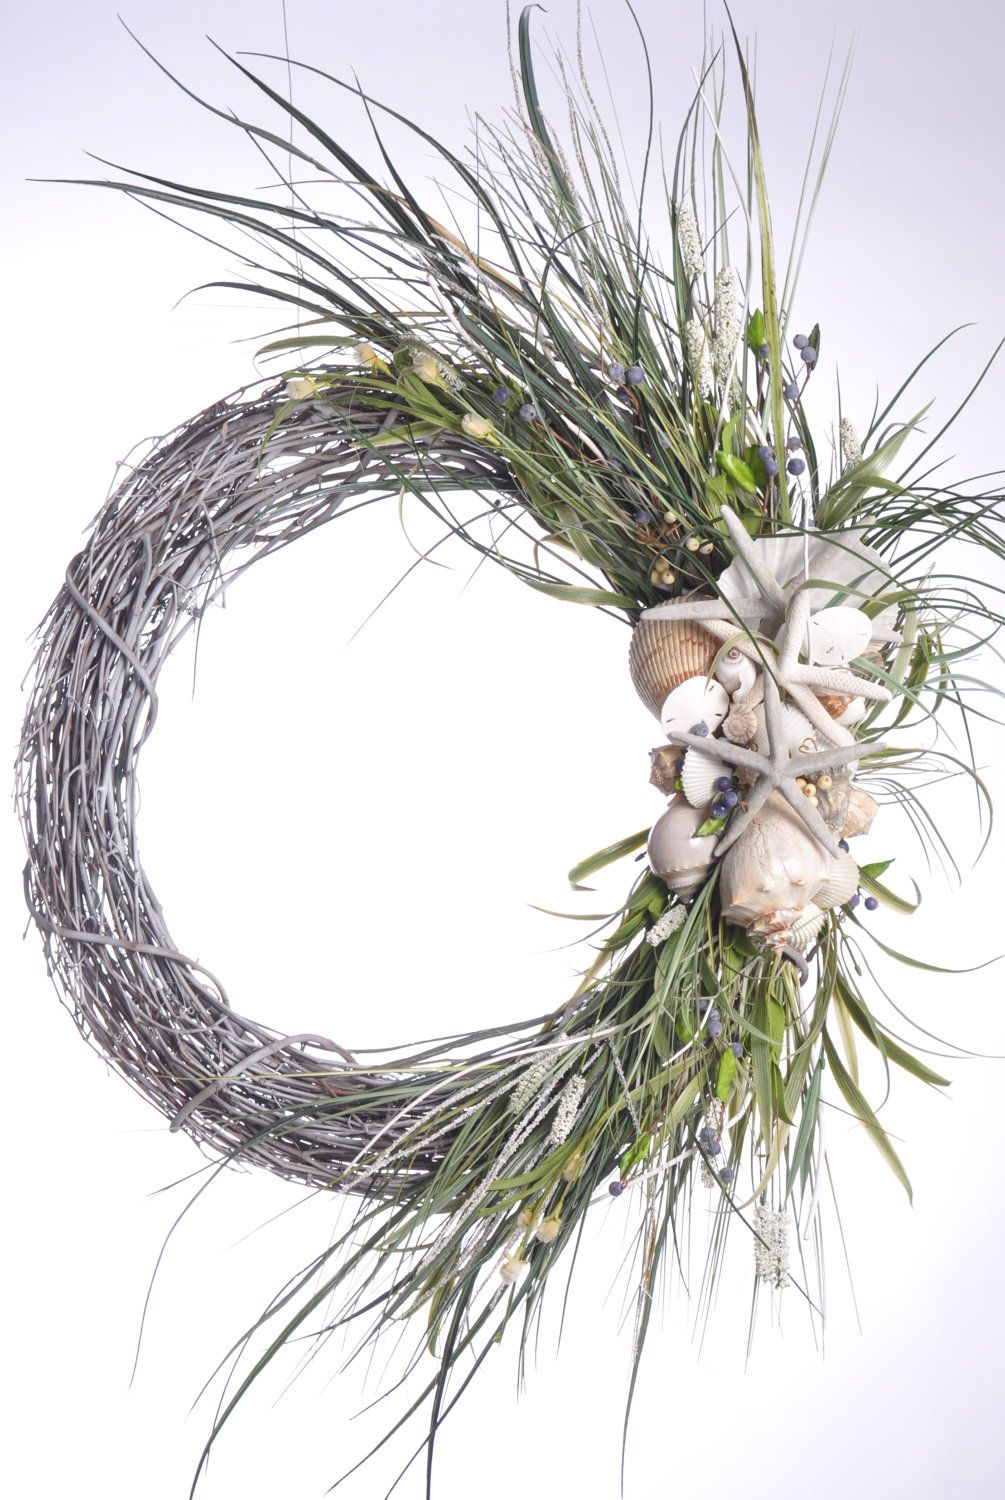 Oversize Beachy Wreath with Starfish and Shells | Wreaths ...